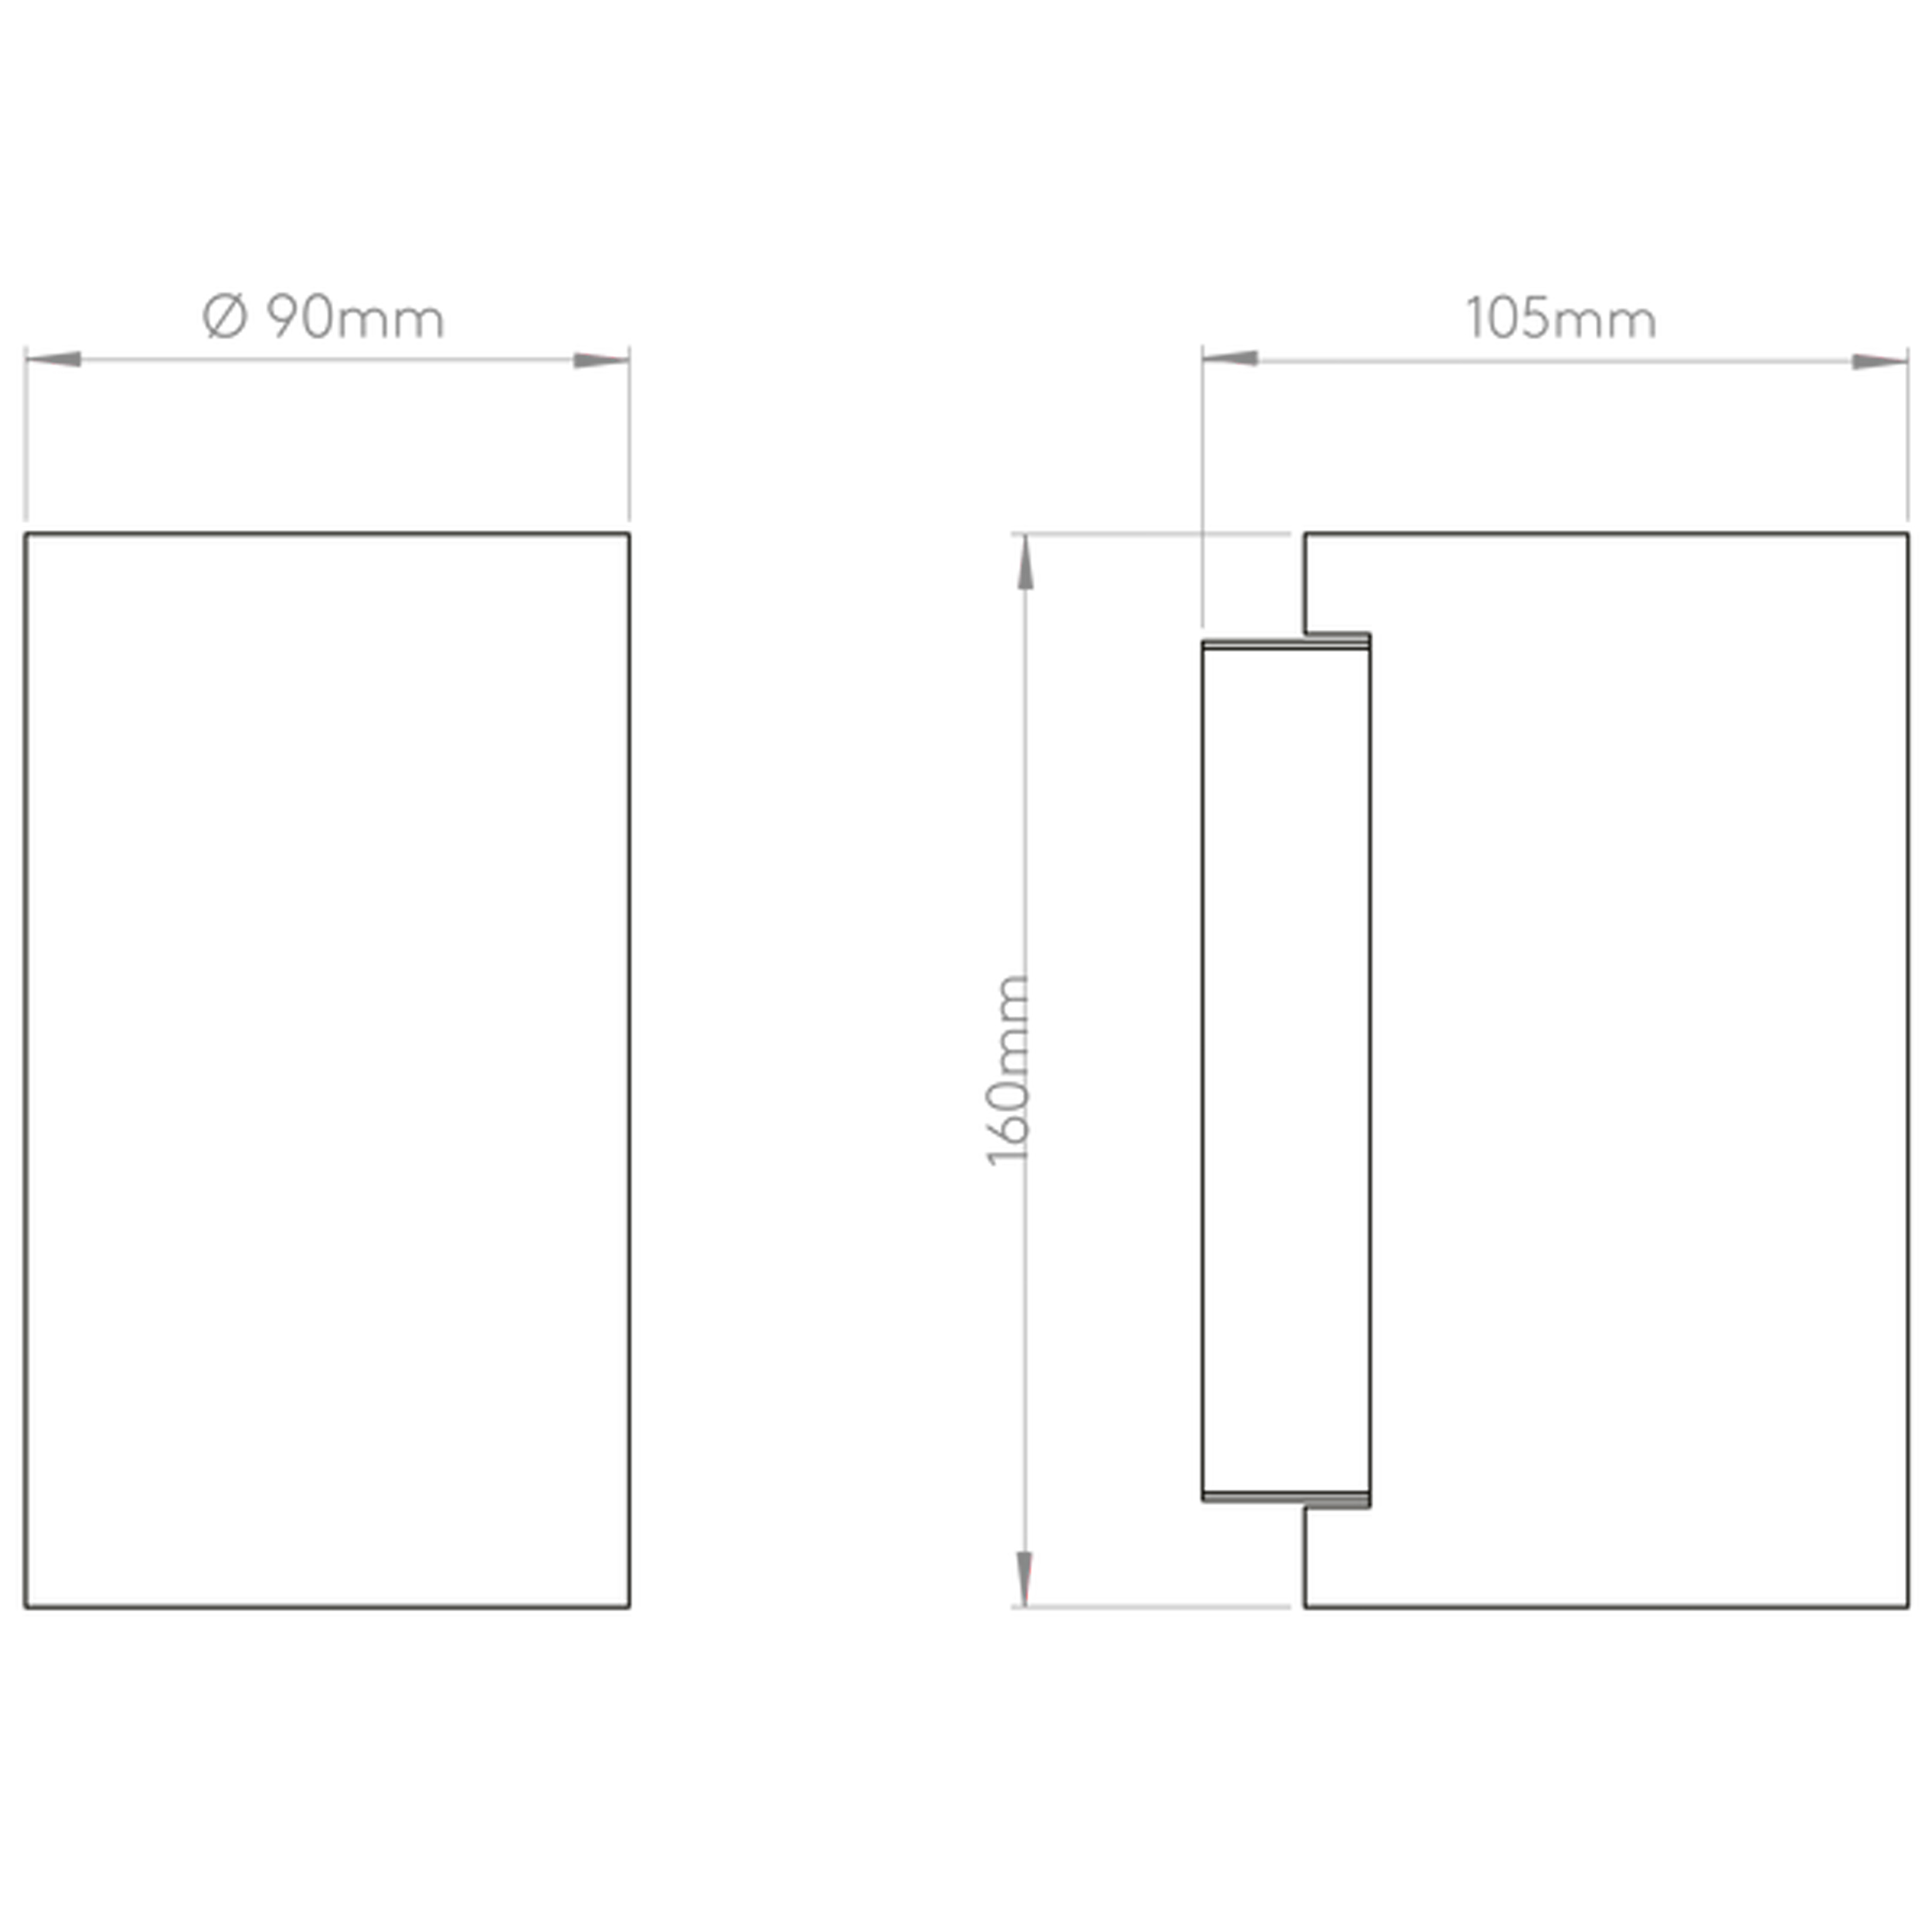 Astro Bologna 160 Led Wall Light Line Drawing